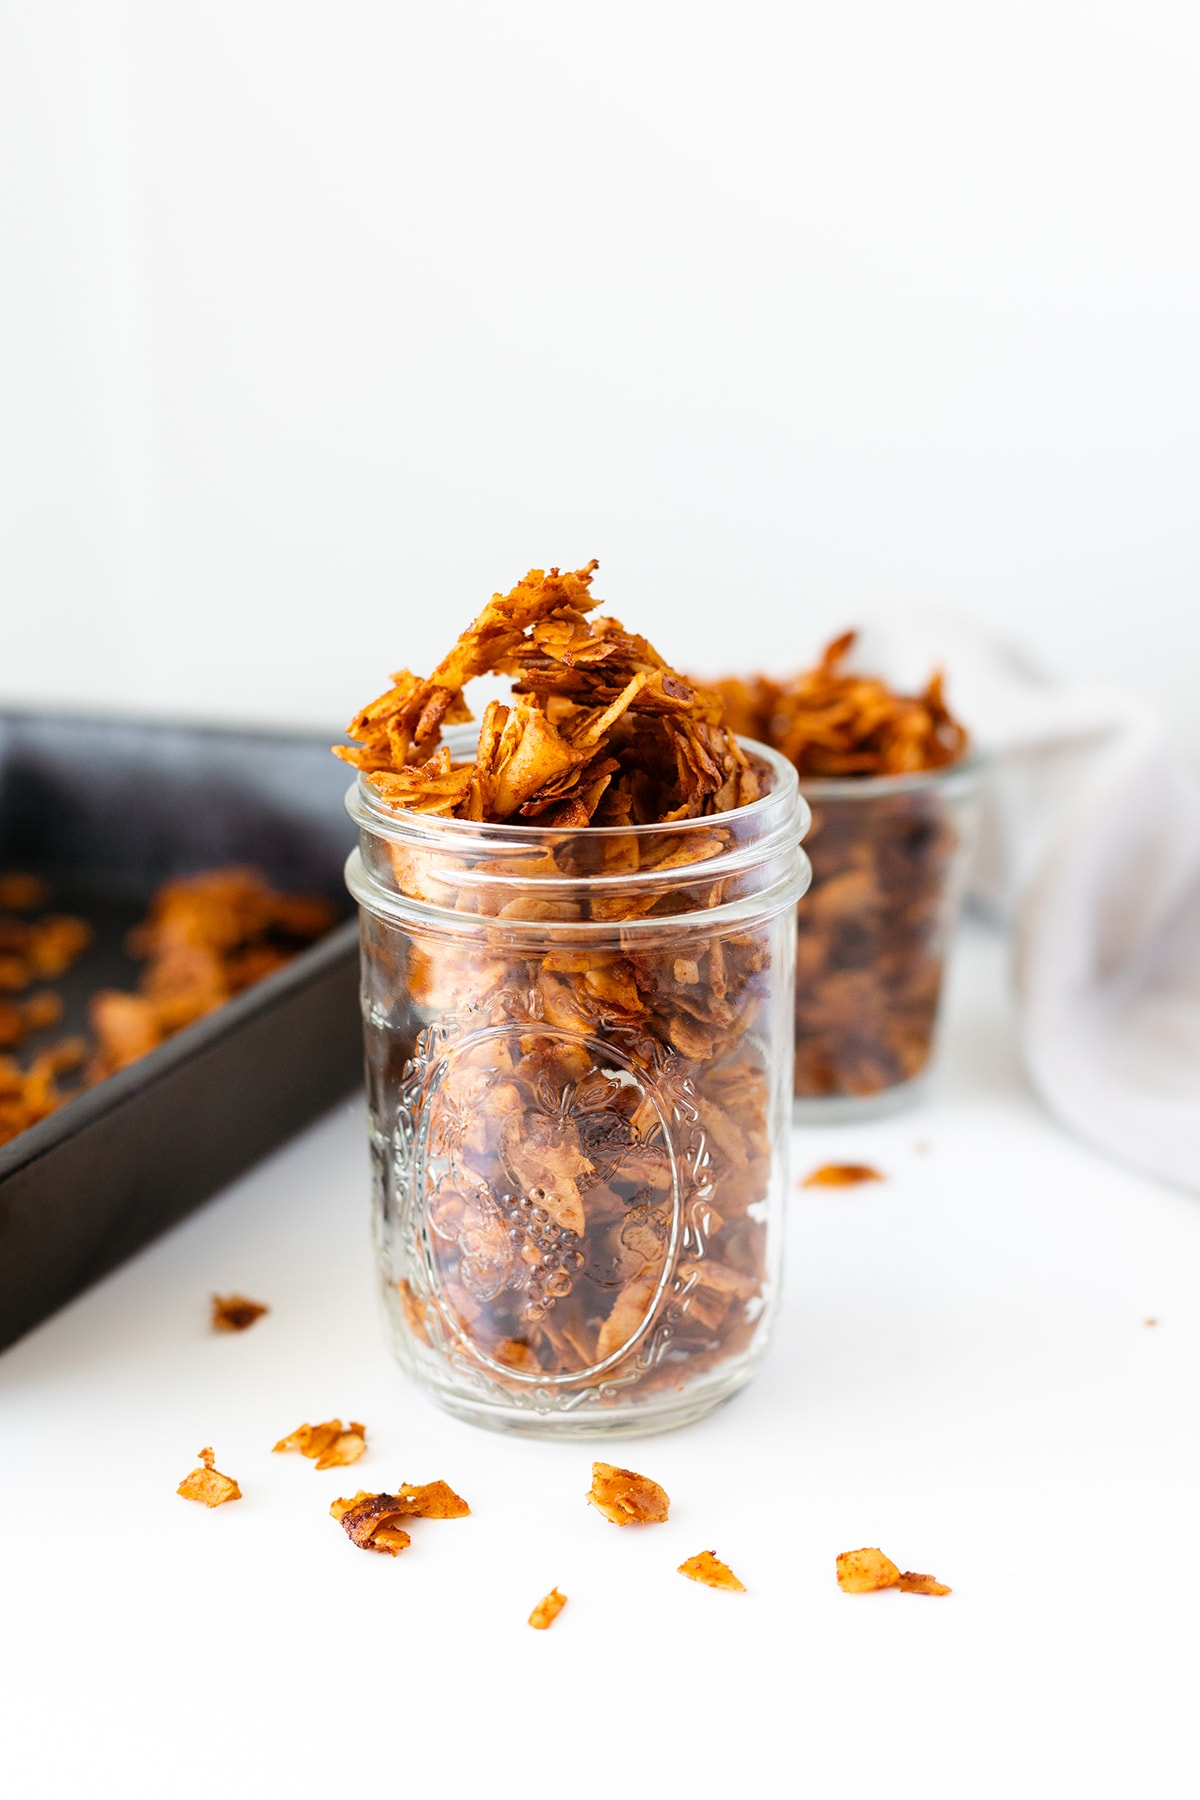 Vegan coconut bacon in a glass jar with a baking sheet in the background